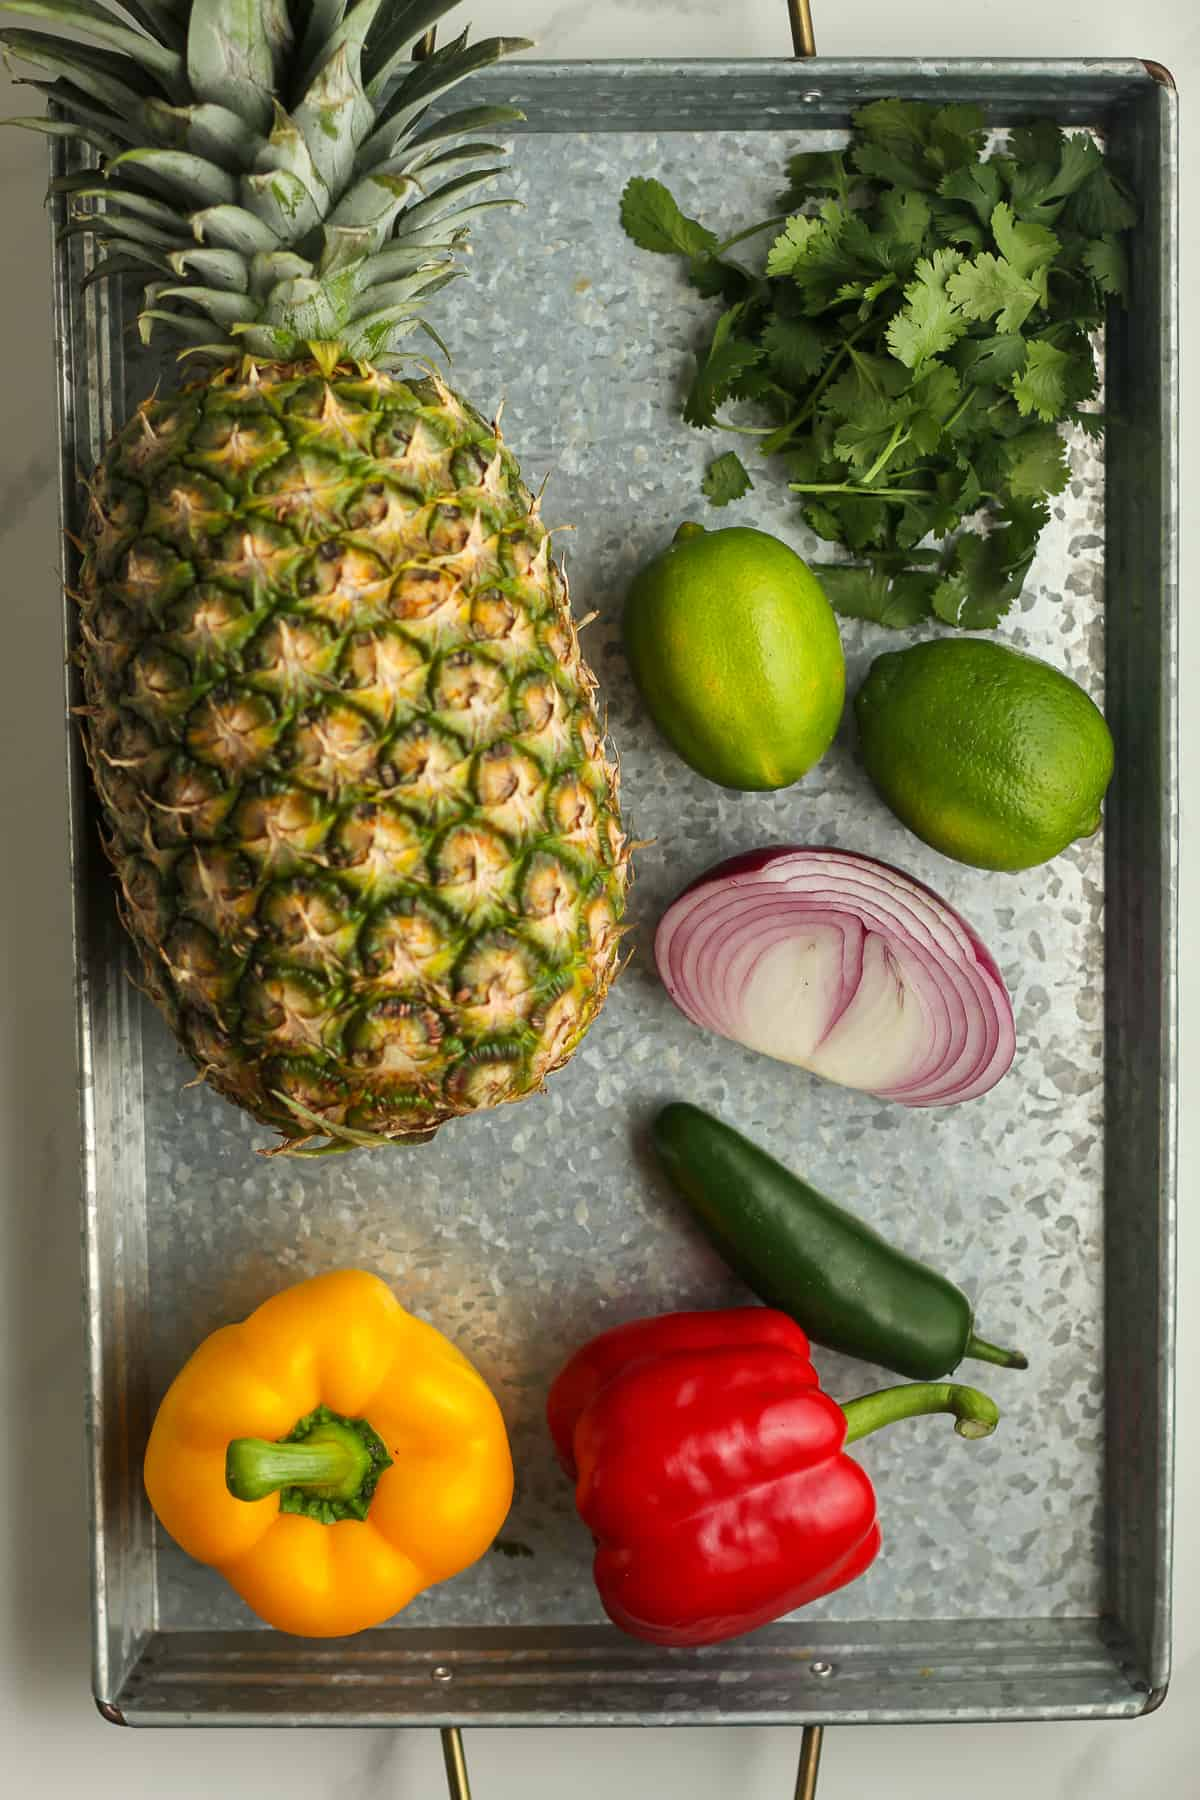 A tray of the pineapple and veggies for the salsa.